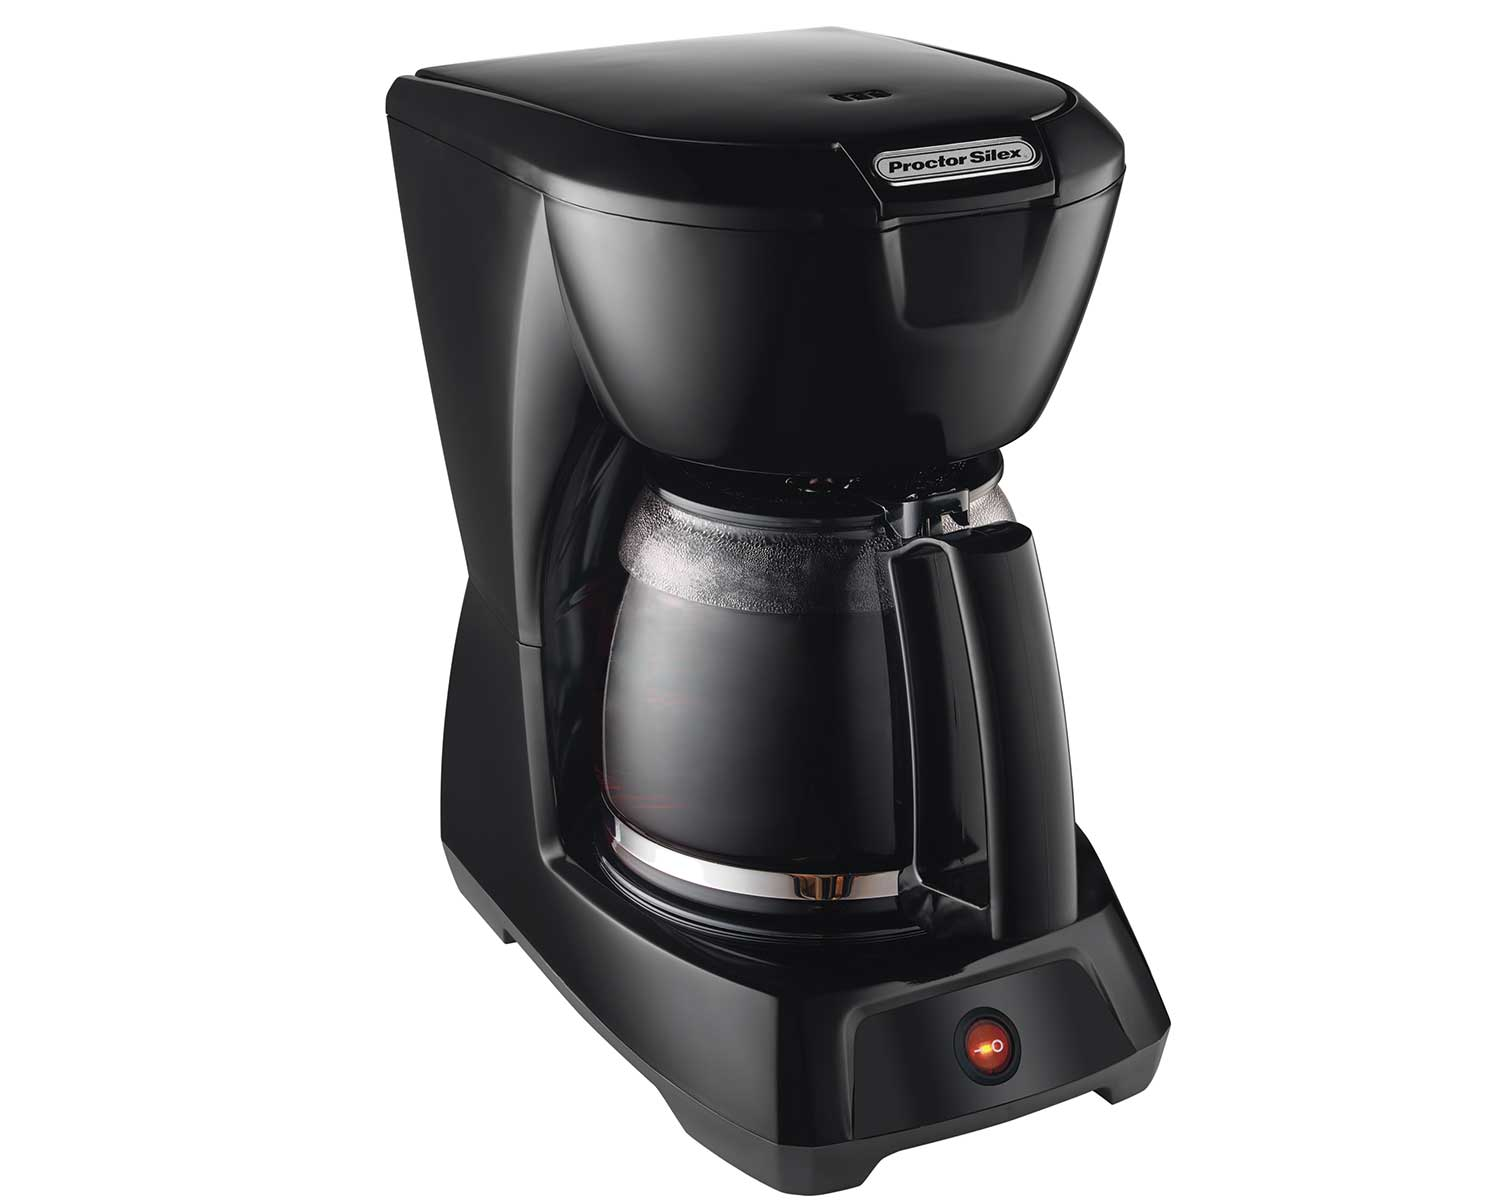 12 Cup Coffee Maker (black)